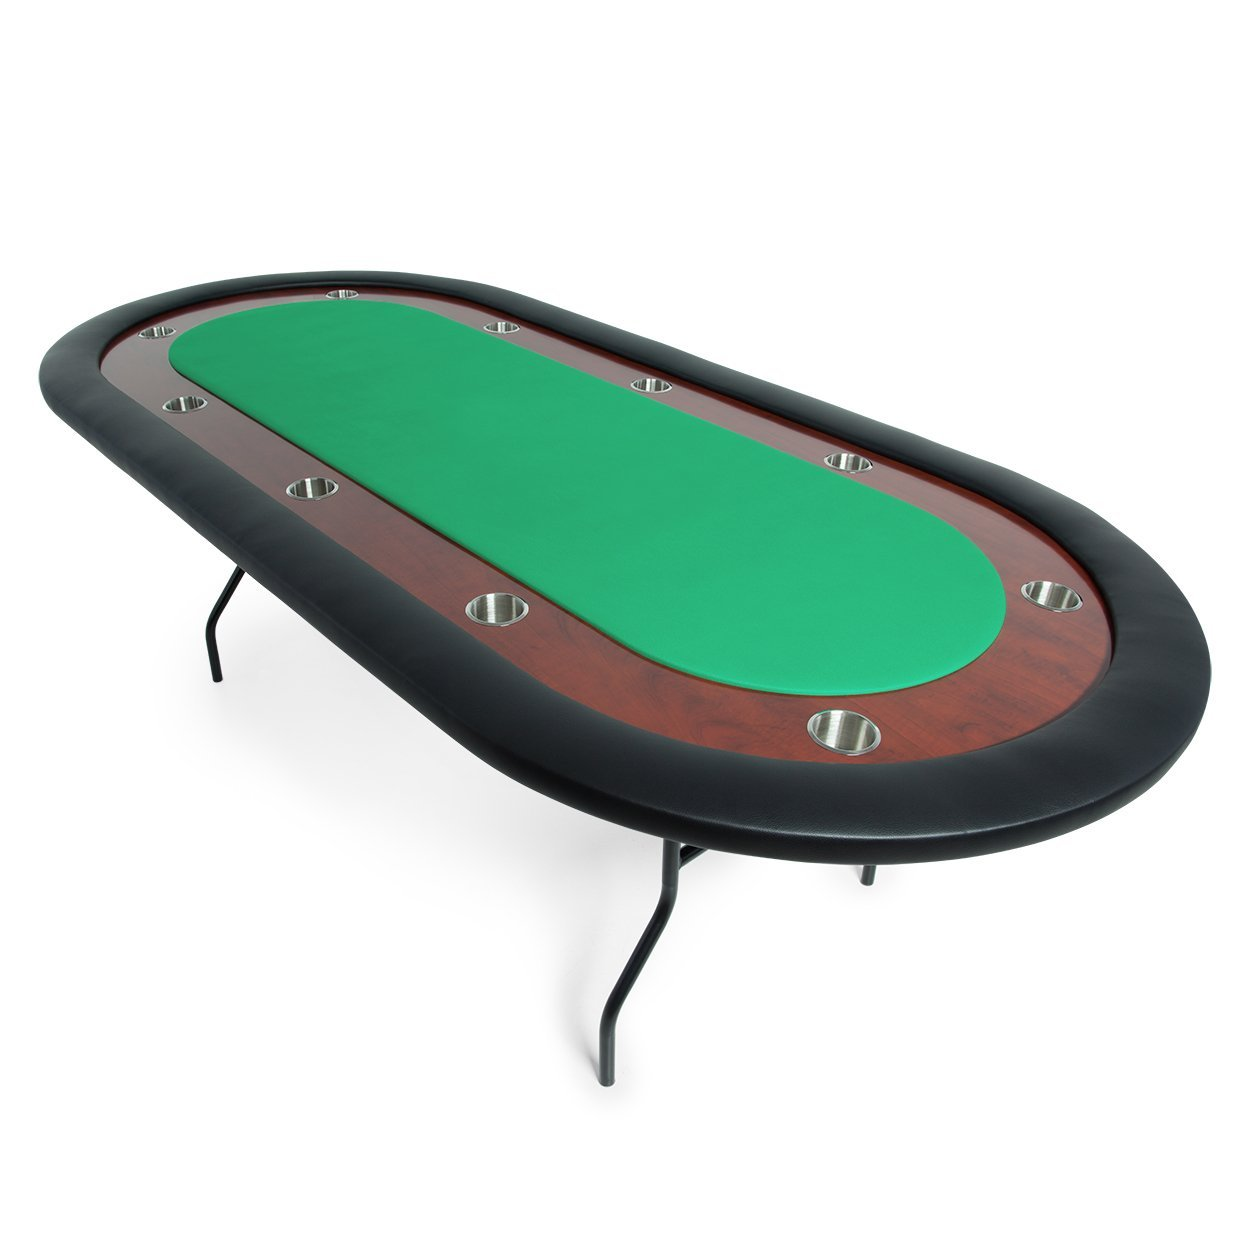 BBO Poker Ultimate Folding Poker Table for 10 Players with Green Felt Playing Surface, 92 x 44-Inch Oval by BBO Poker